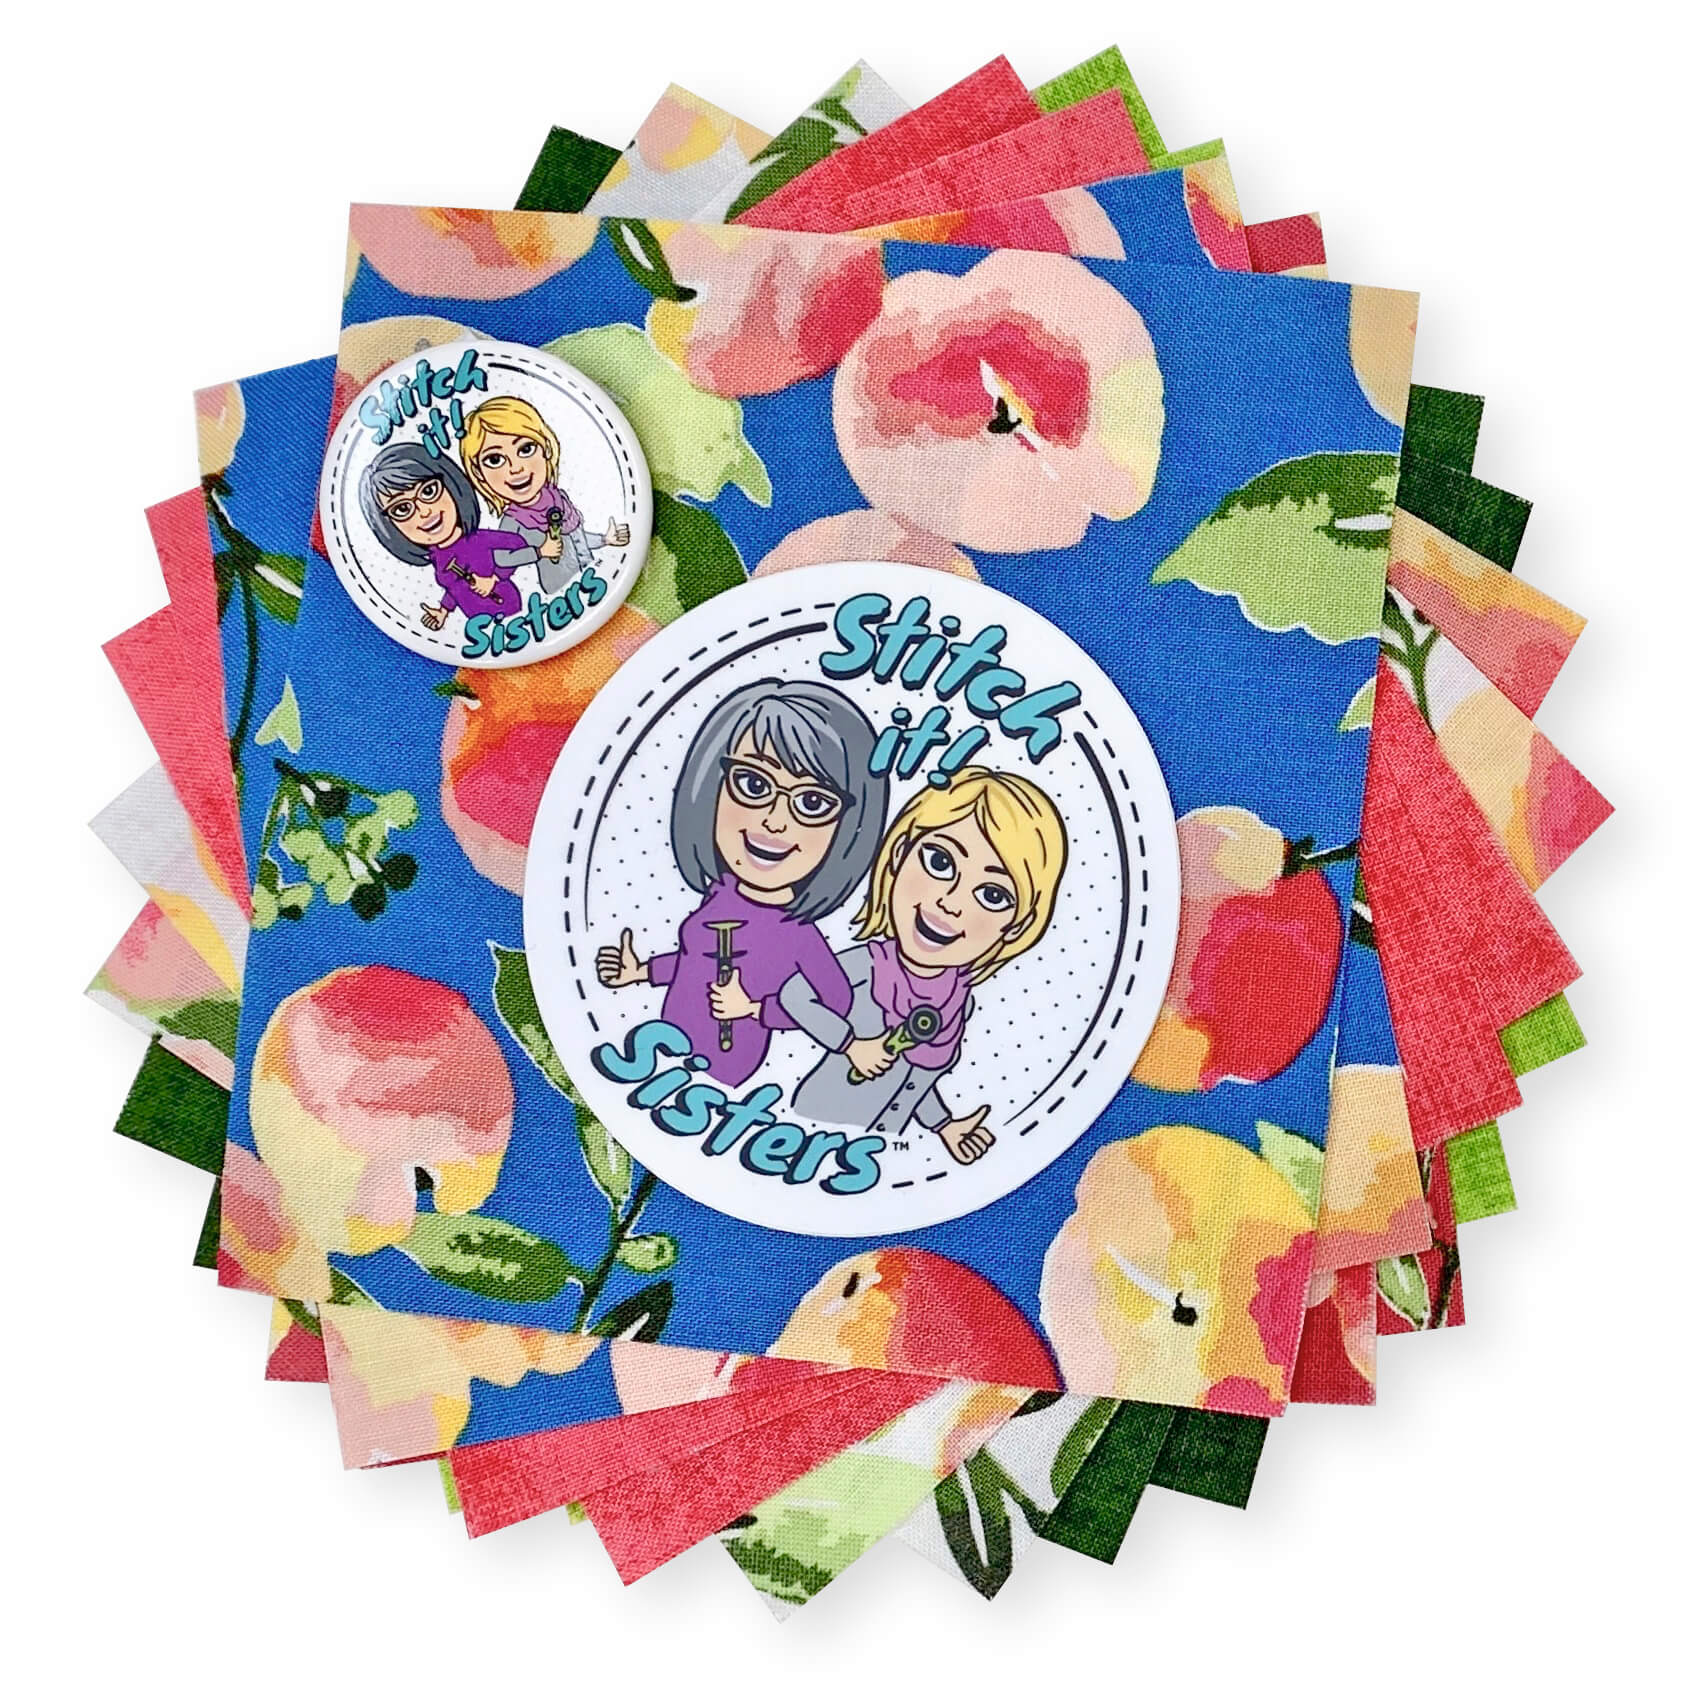 Stitch it Sisters 5 inch Fabric Short Stack with S!S Button and Sticker Giveaway at The NZP Nancy Zieman Productions Blog